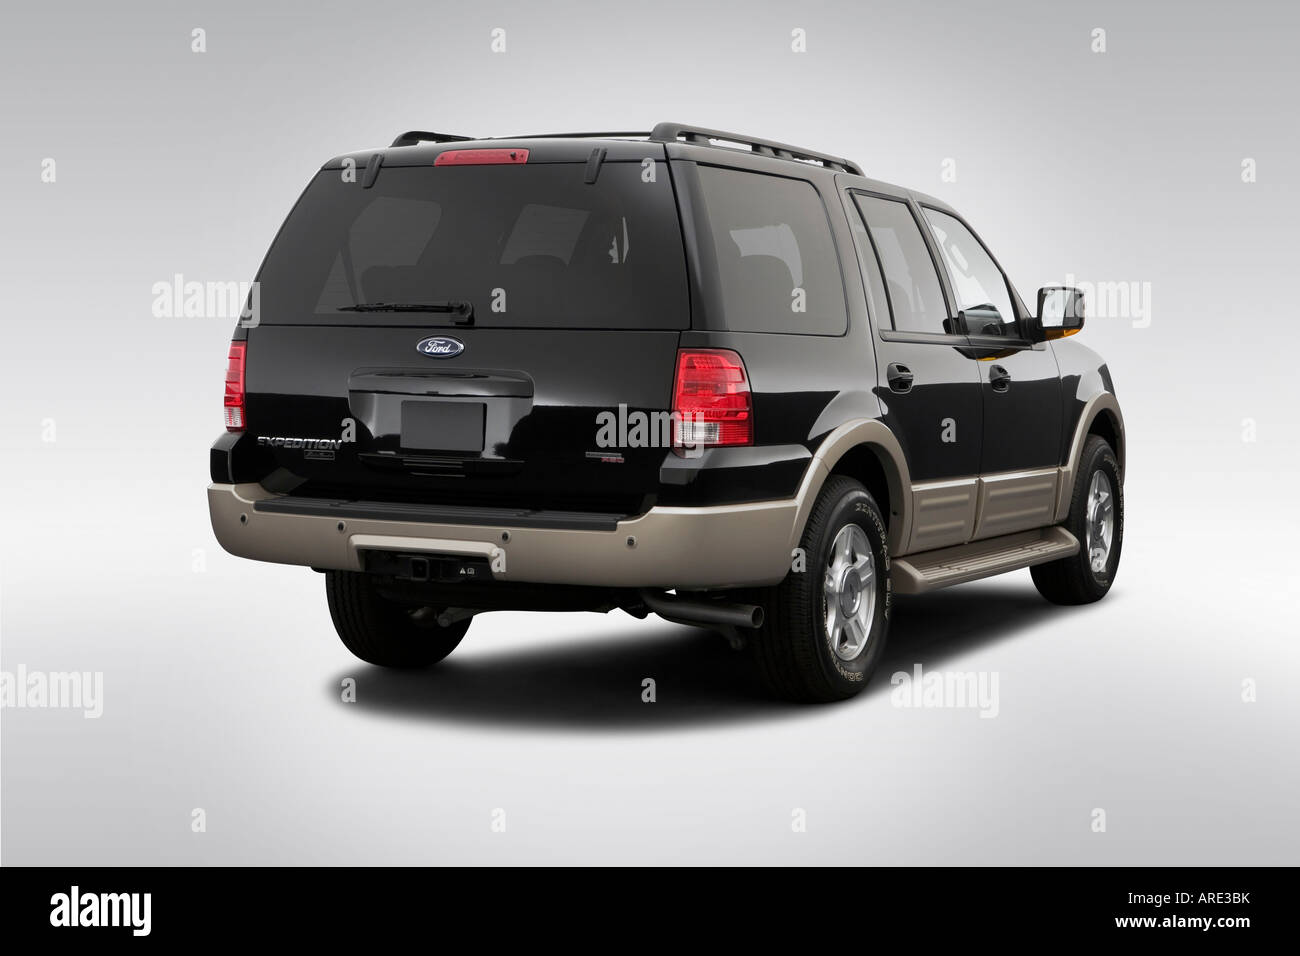 Ford Expedition Eddie Bauer In Black Rear Angle View Stock - 2006 expedition